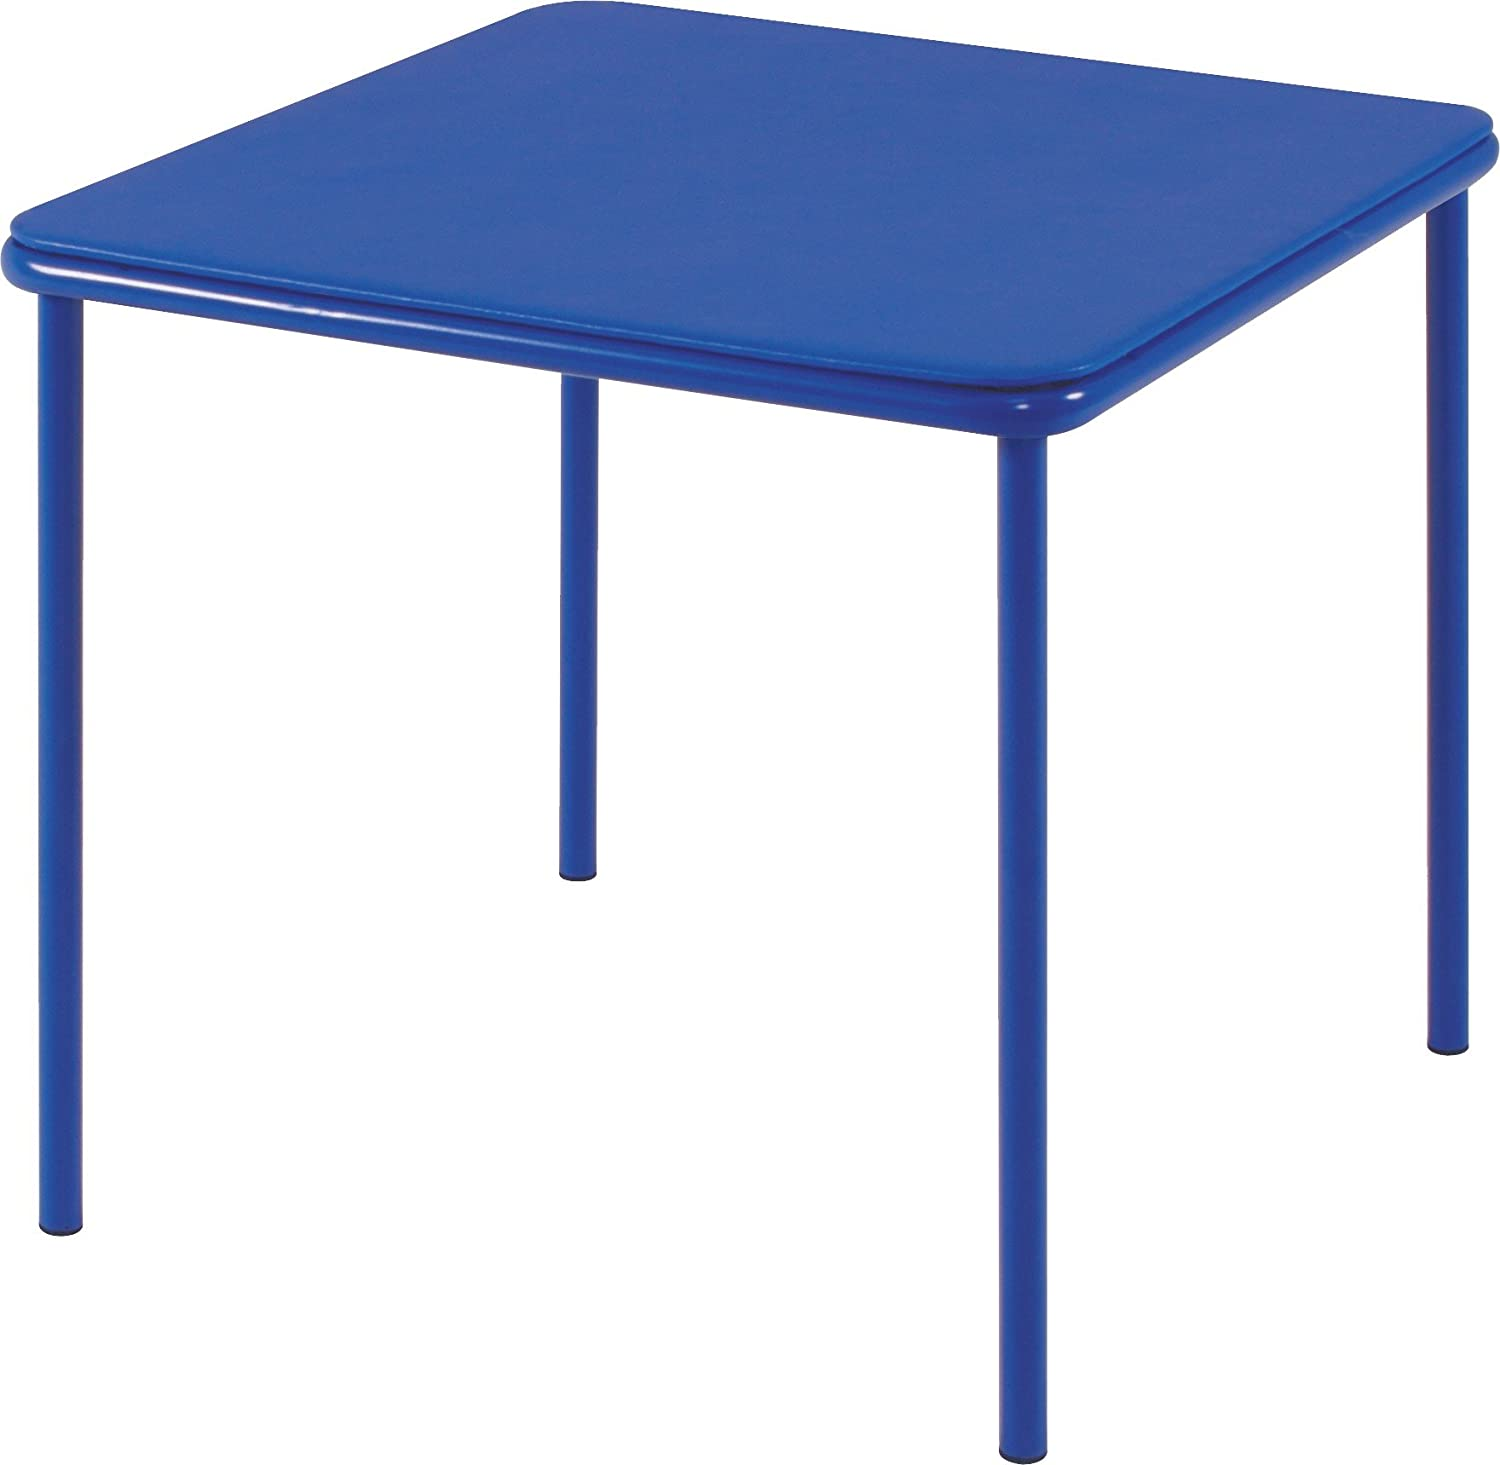 Mwo forums what the reason of this second blue table for Table in table